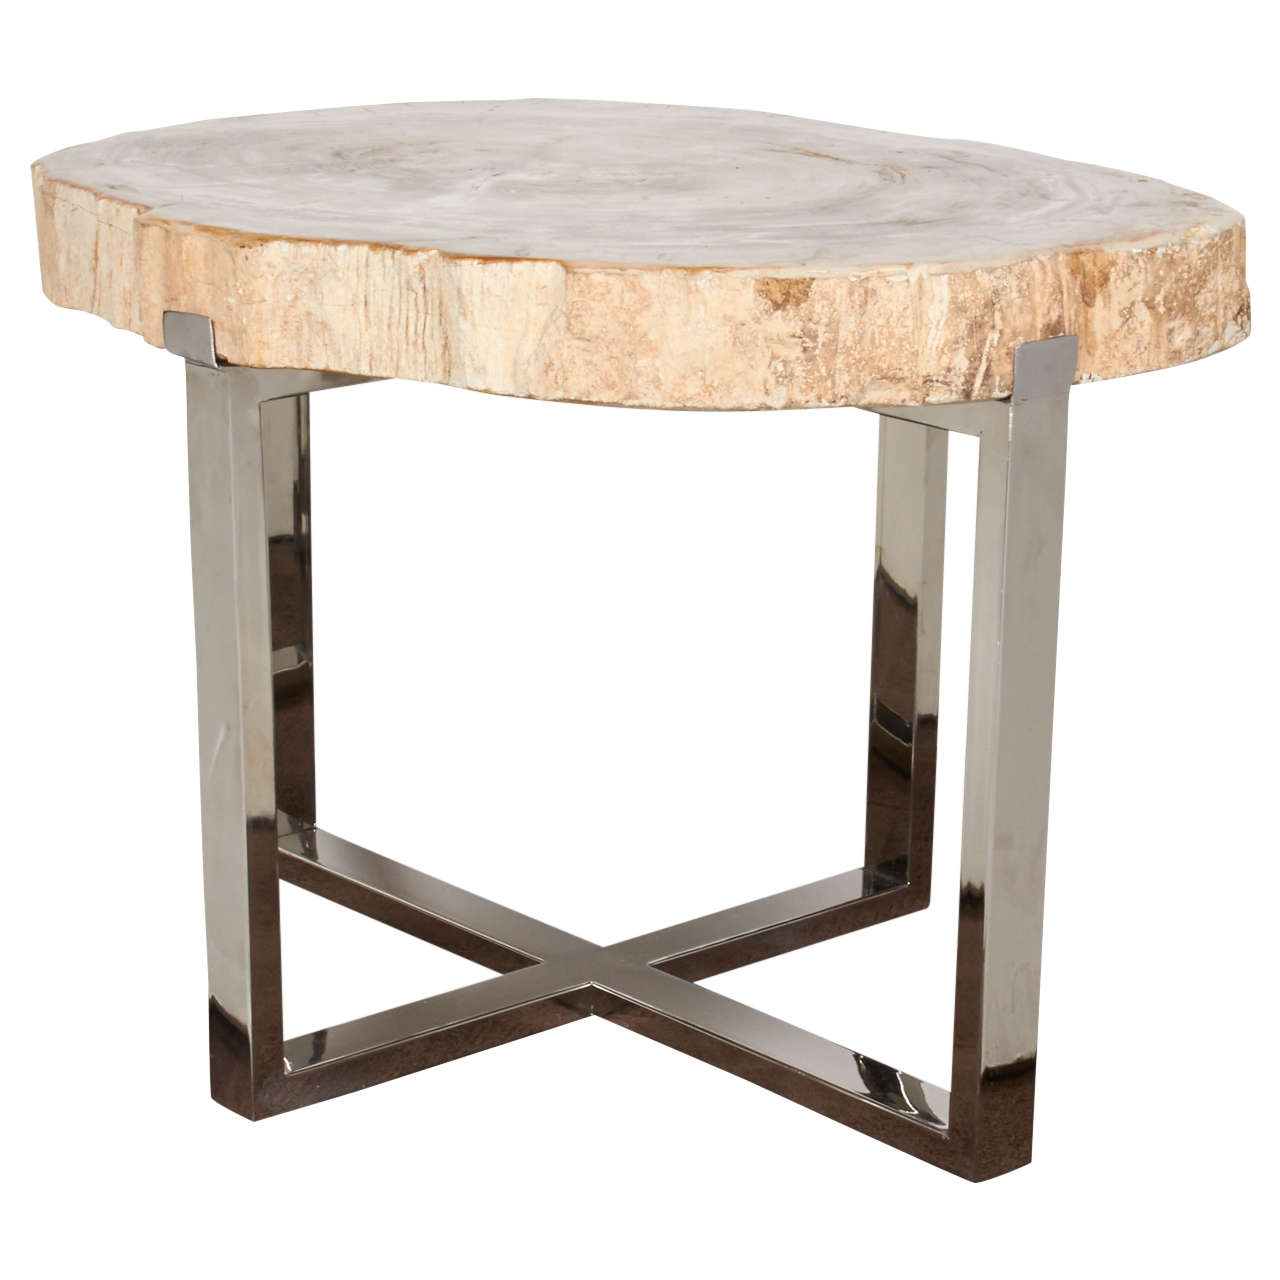 Petrified Wood Slab Coffee Table Or Side Table At 1stdibs